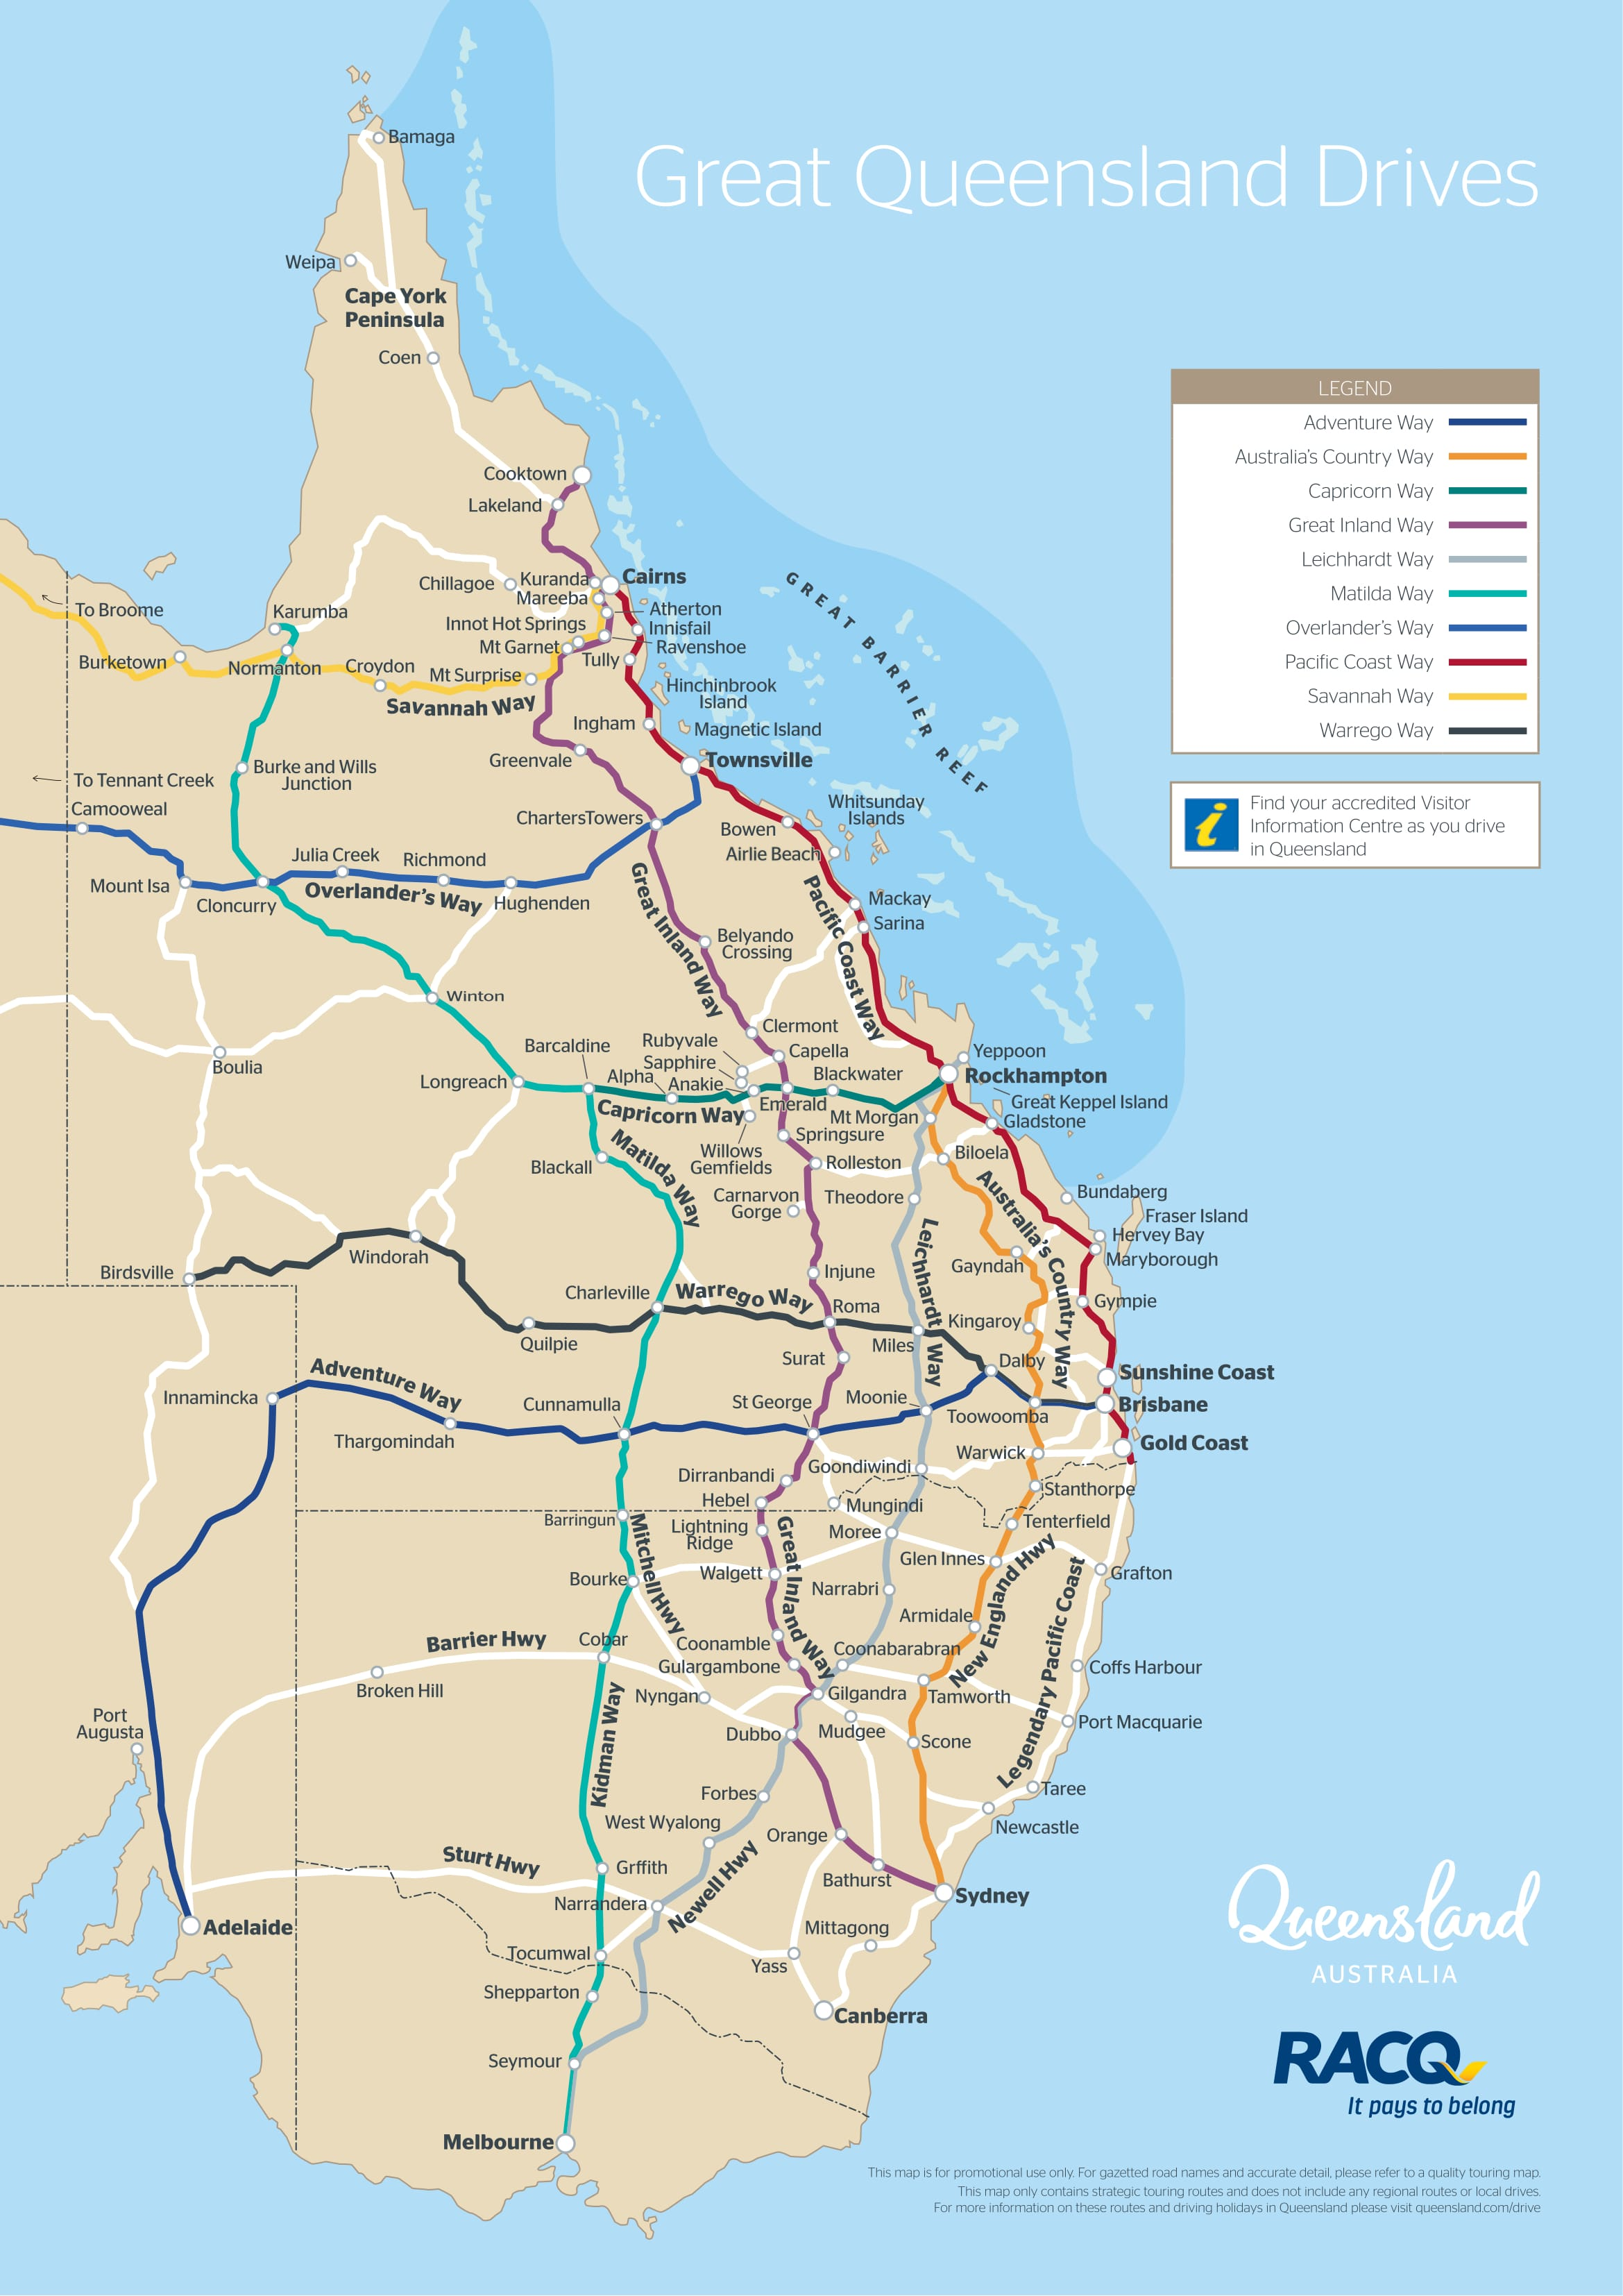 Queensland Drive Map Outback Queensland Australia - Map australia queensland